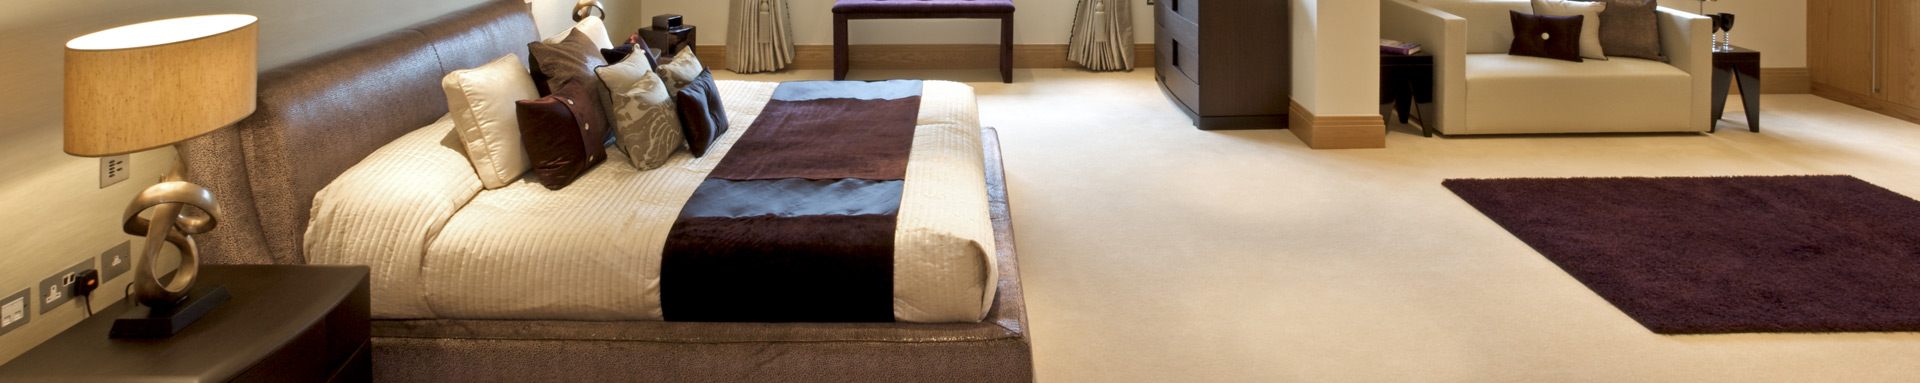 Carpet, Upholstery and Mattress Cleaning | BestPro Cleaning